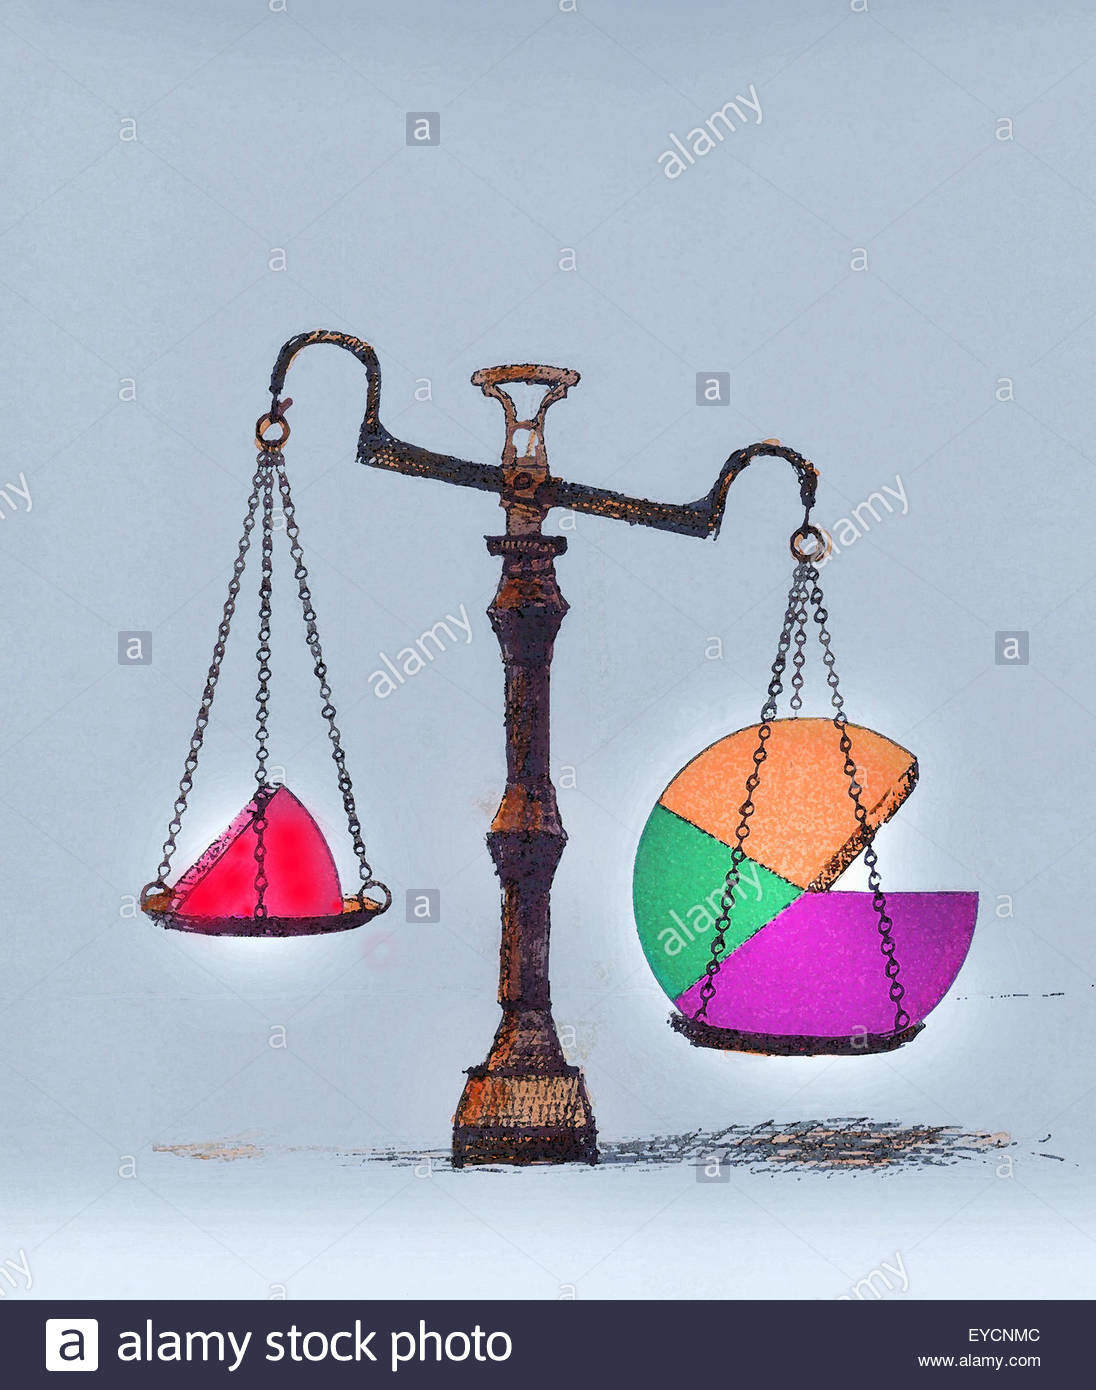 Unequal shares of pie chart on weigh scales - Stock Image